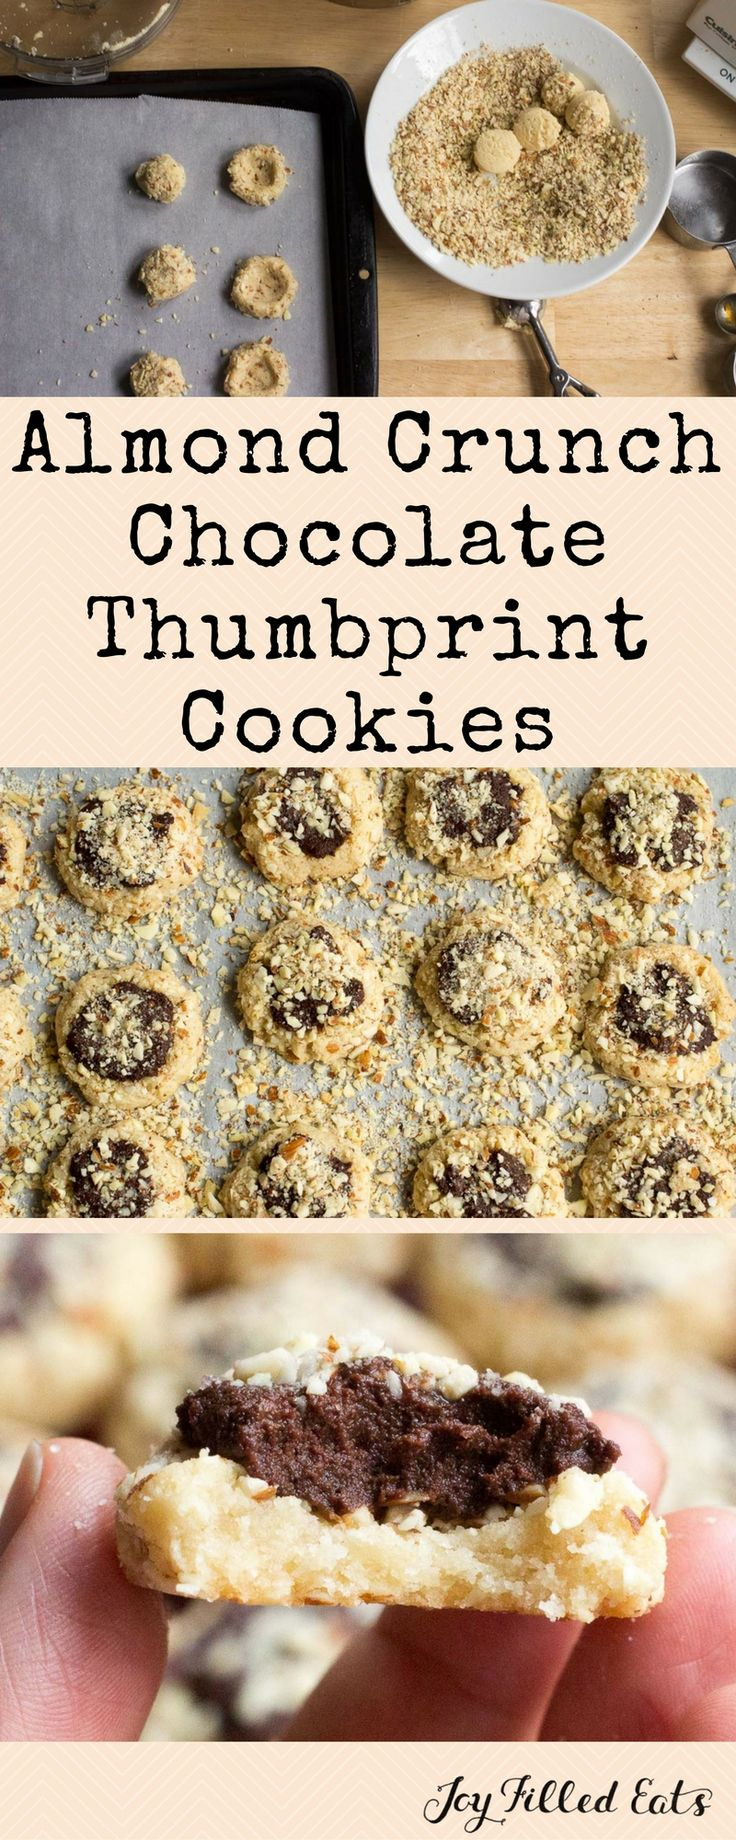 Almond Crunch Chocolate Thumbprint Cookies - Low Carb, Sugar & Grain Free, THM S. These Almond Crunch Chocolate Thumbprint Cookies are the first. If the rest are even half as good as these I'll be happy. These melt in your mouth like shortbread, have the crunch of almonds, and the richness of chocolate ganache. They are the perfect holiday bite.  via @joyfilledeats